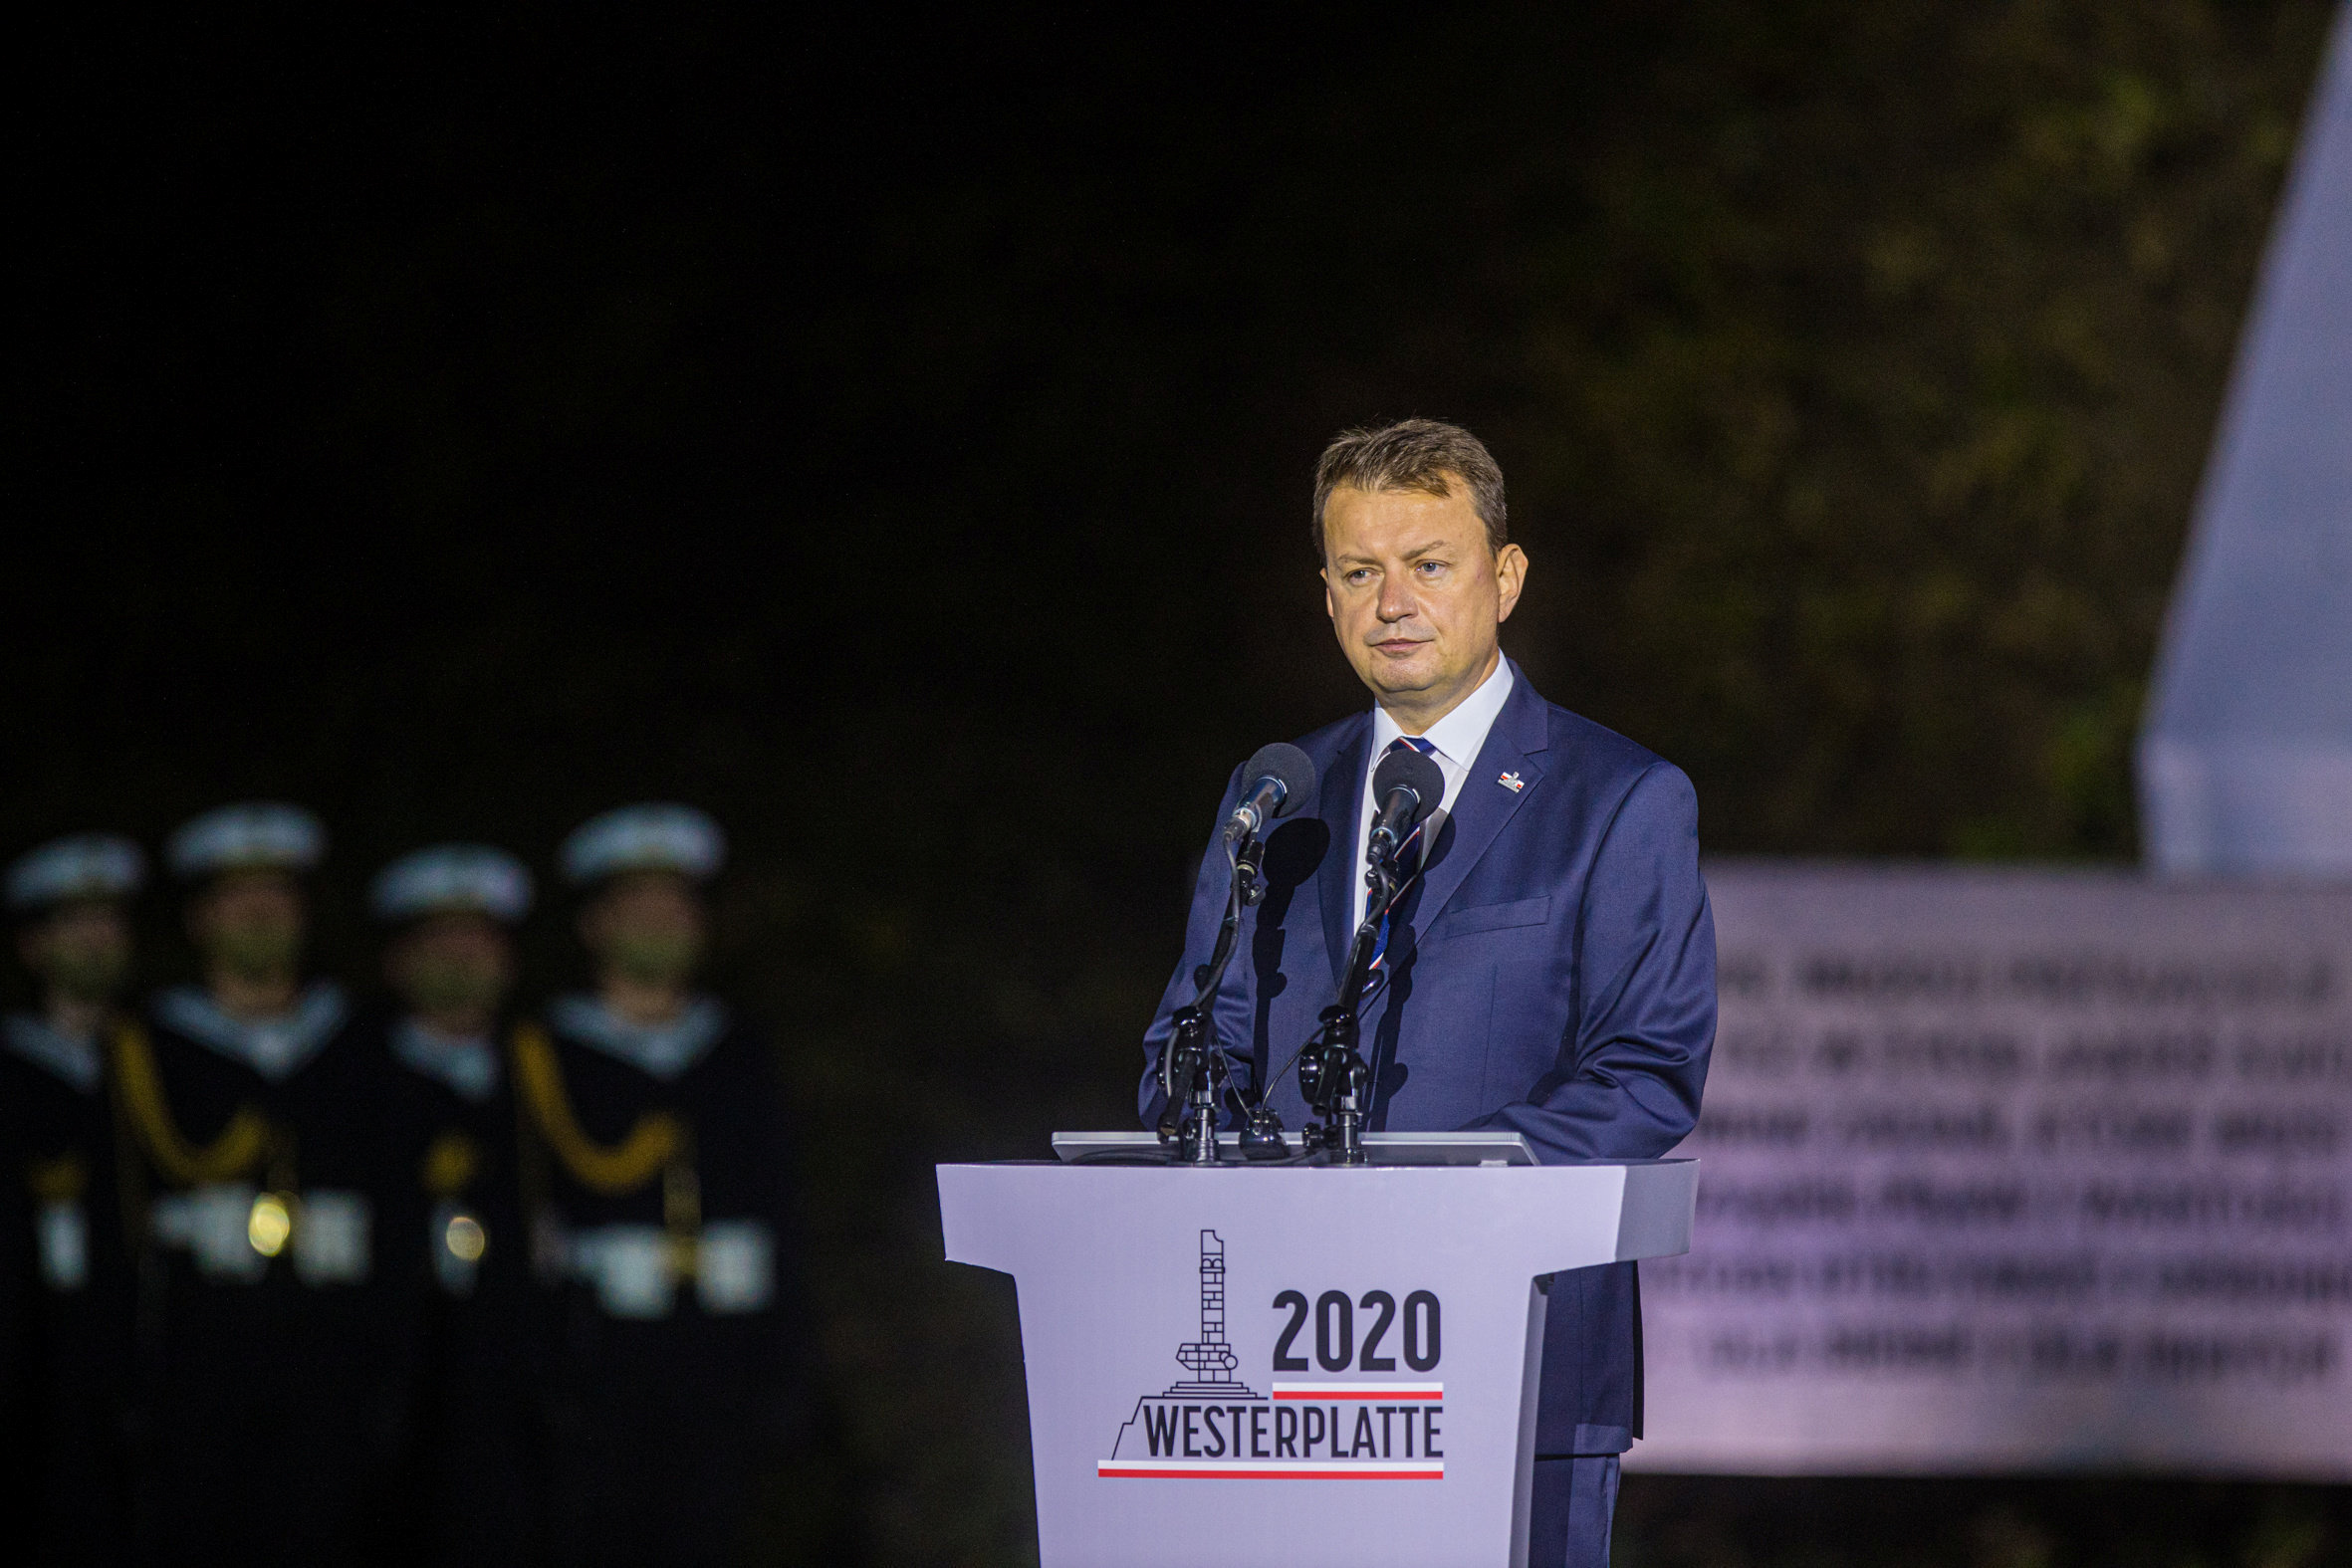 Poland's Minister of Defence Mariusz Blaszczak delivers a speech during a commemorative ceremony to mark the 81st anniversary of the outbreak of World War Two at Westerplatte Memorial in Gdansk, Poland September 1, 2020. Michal Ryniak/Agencja Gazeta/via REUTERS